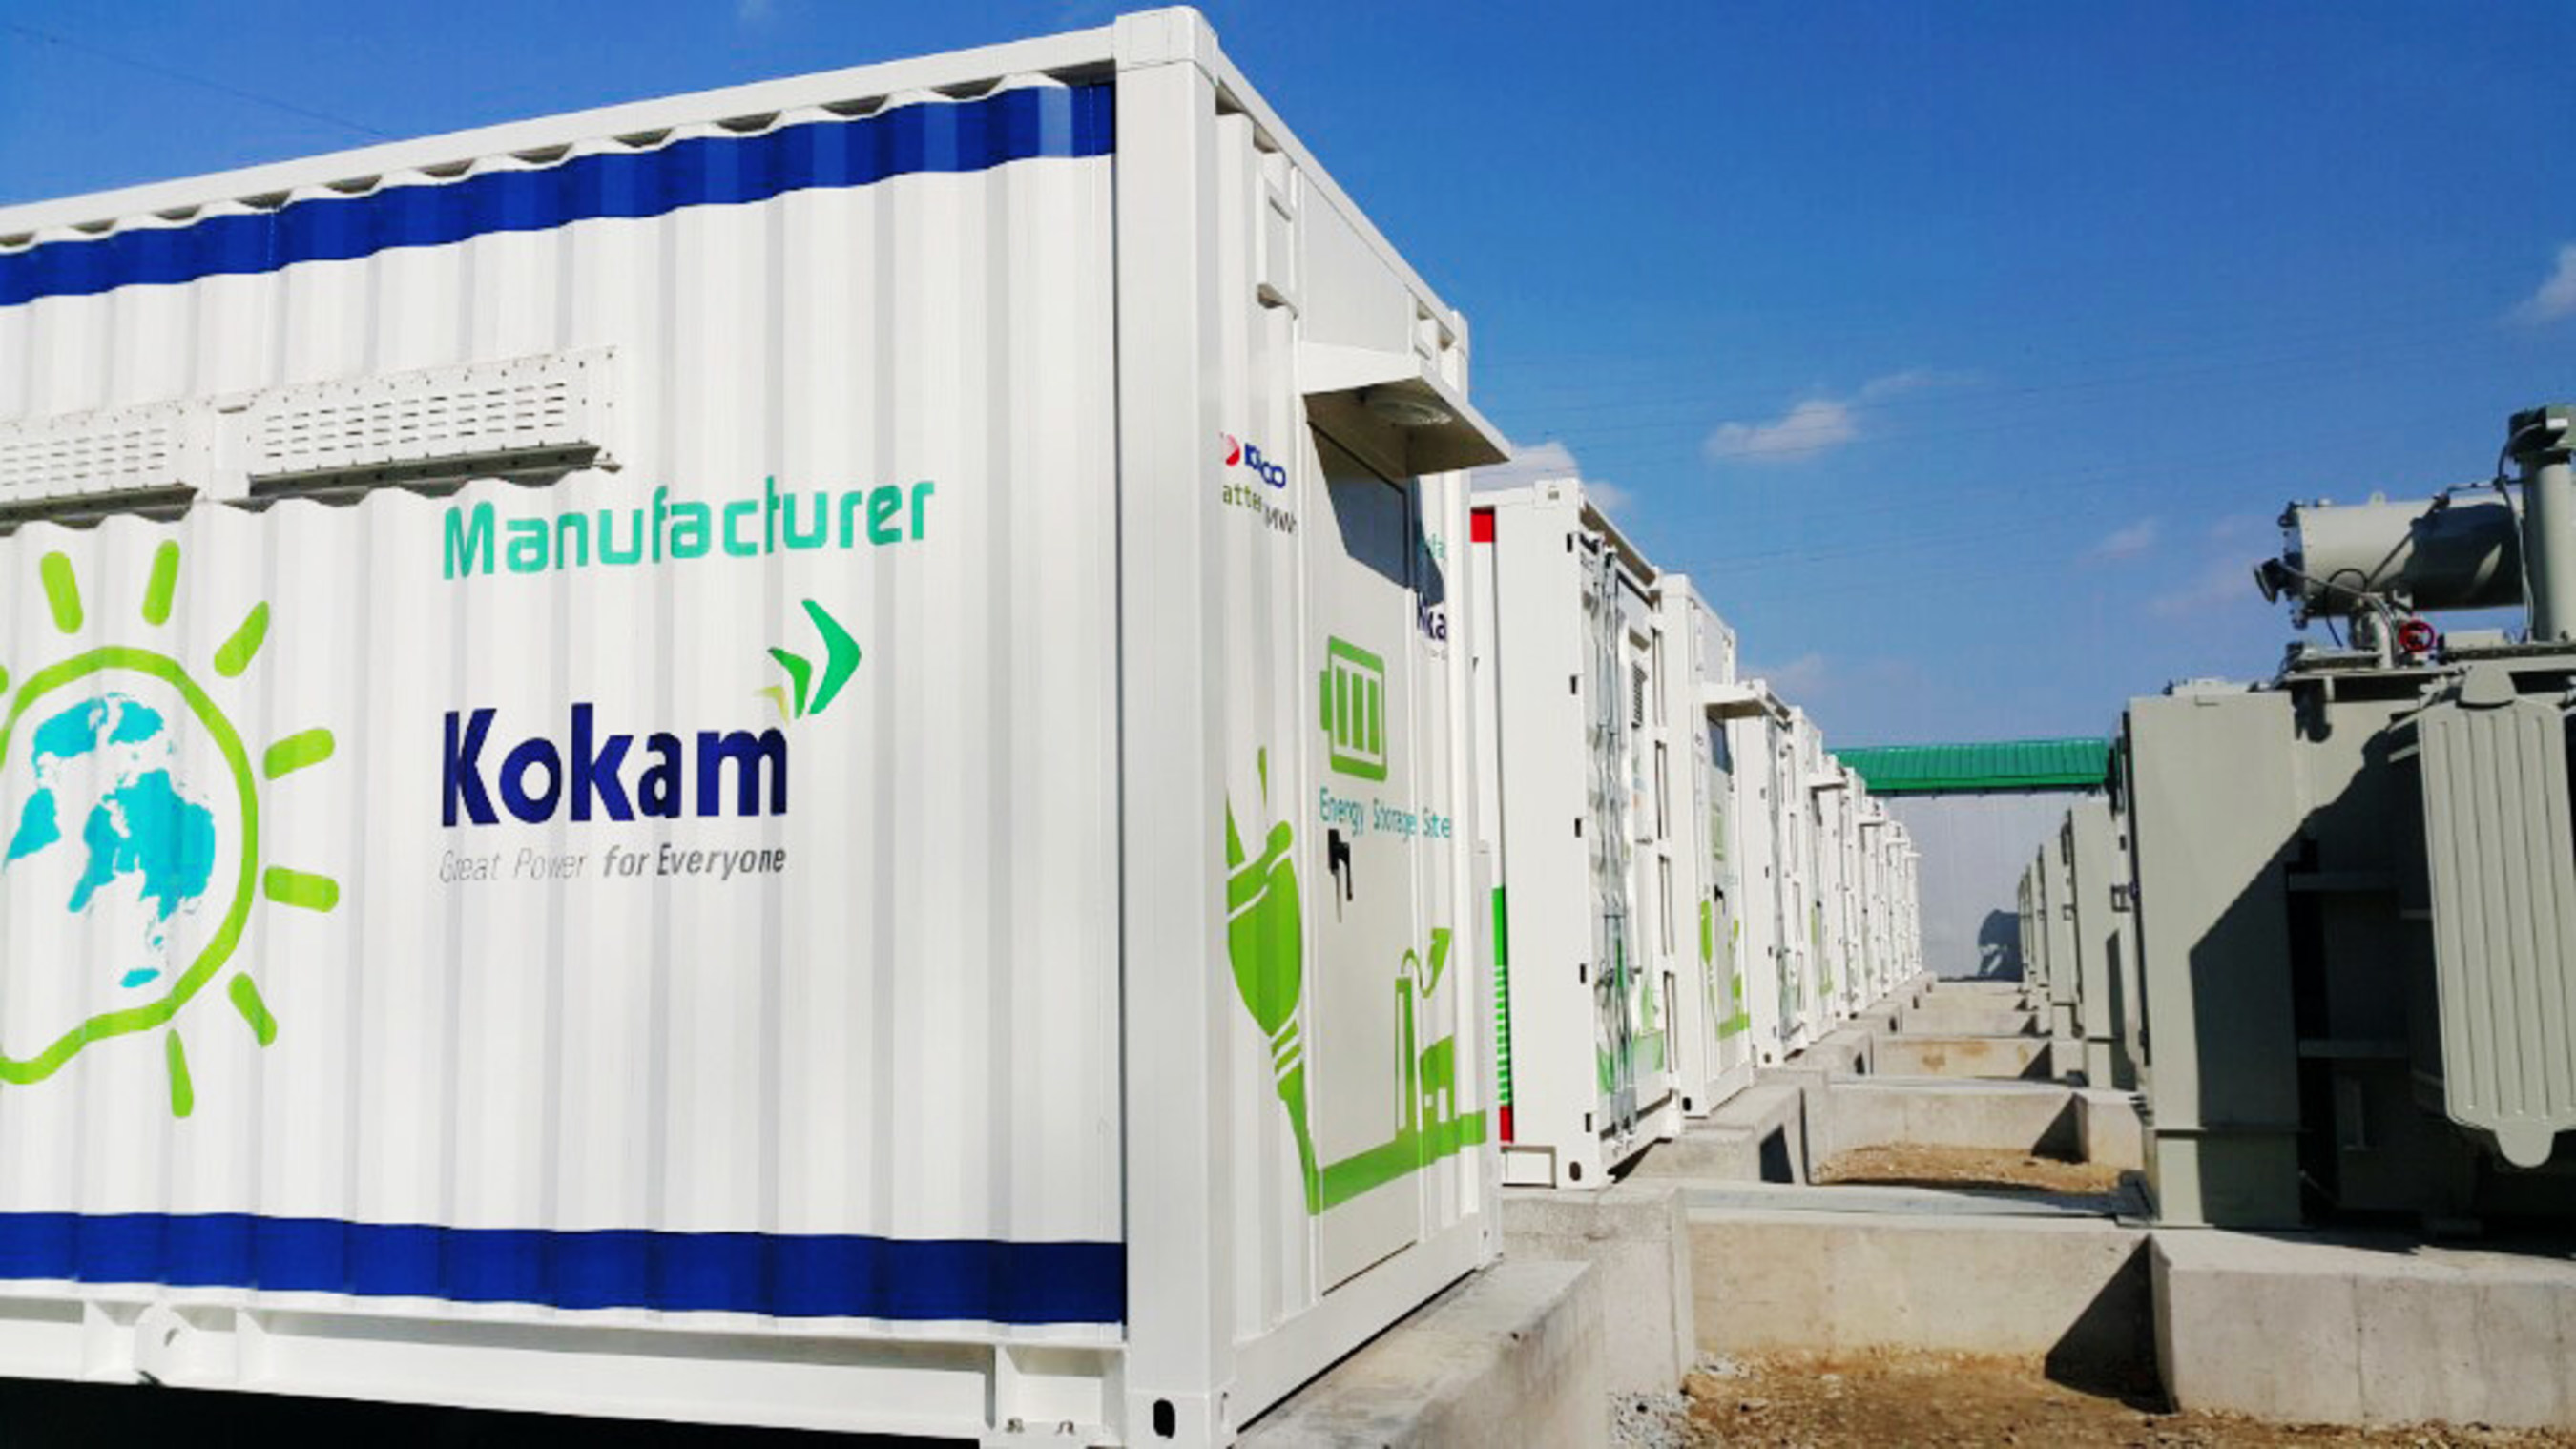 This Kokam 24-megawatt Energy Storage System (ESS), deployed for use by South Korea's largest utility, Korea Electric Power Corporation (KEPCO), is the world's largest Lithium NMC ESS for frequency regulation